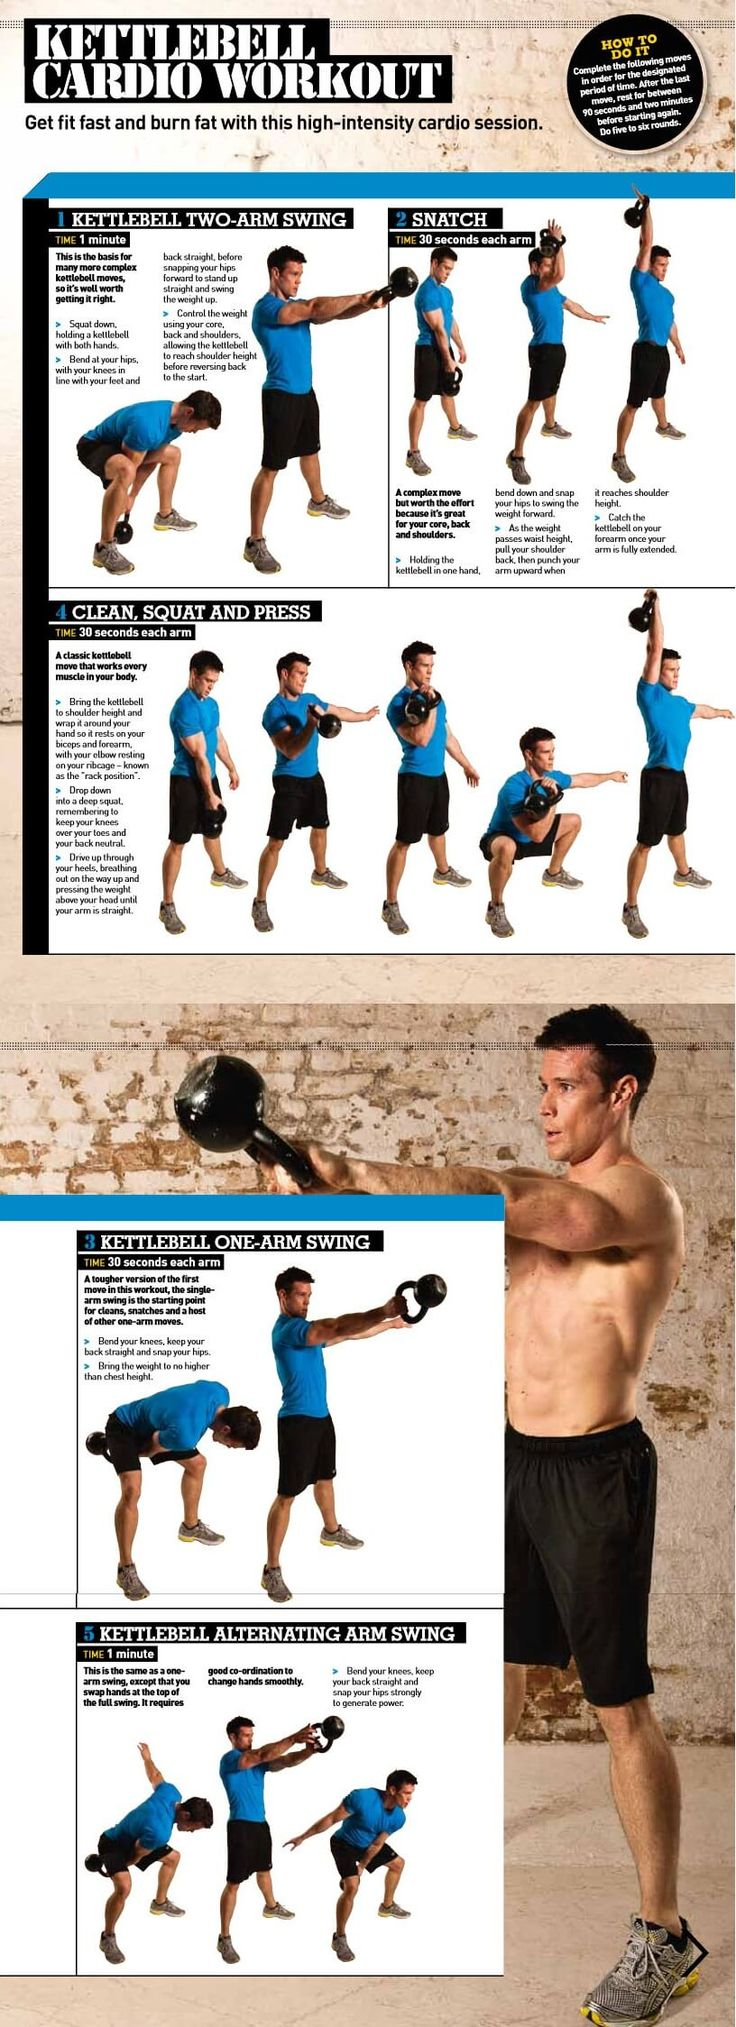 High Intensity Kettlebell Cardio Workout Infographic. Get fit fast and burn fat with this high-intensity cardio session The Kettlebell can burn heck of a lo